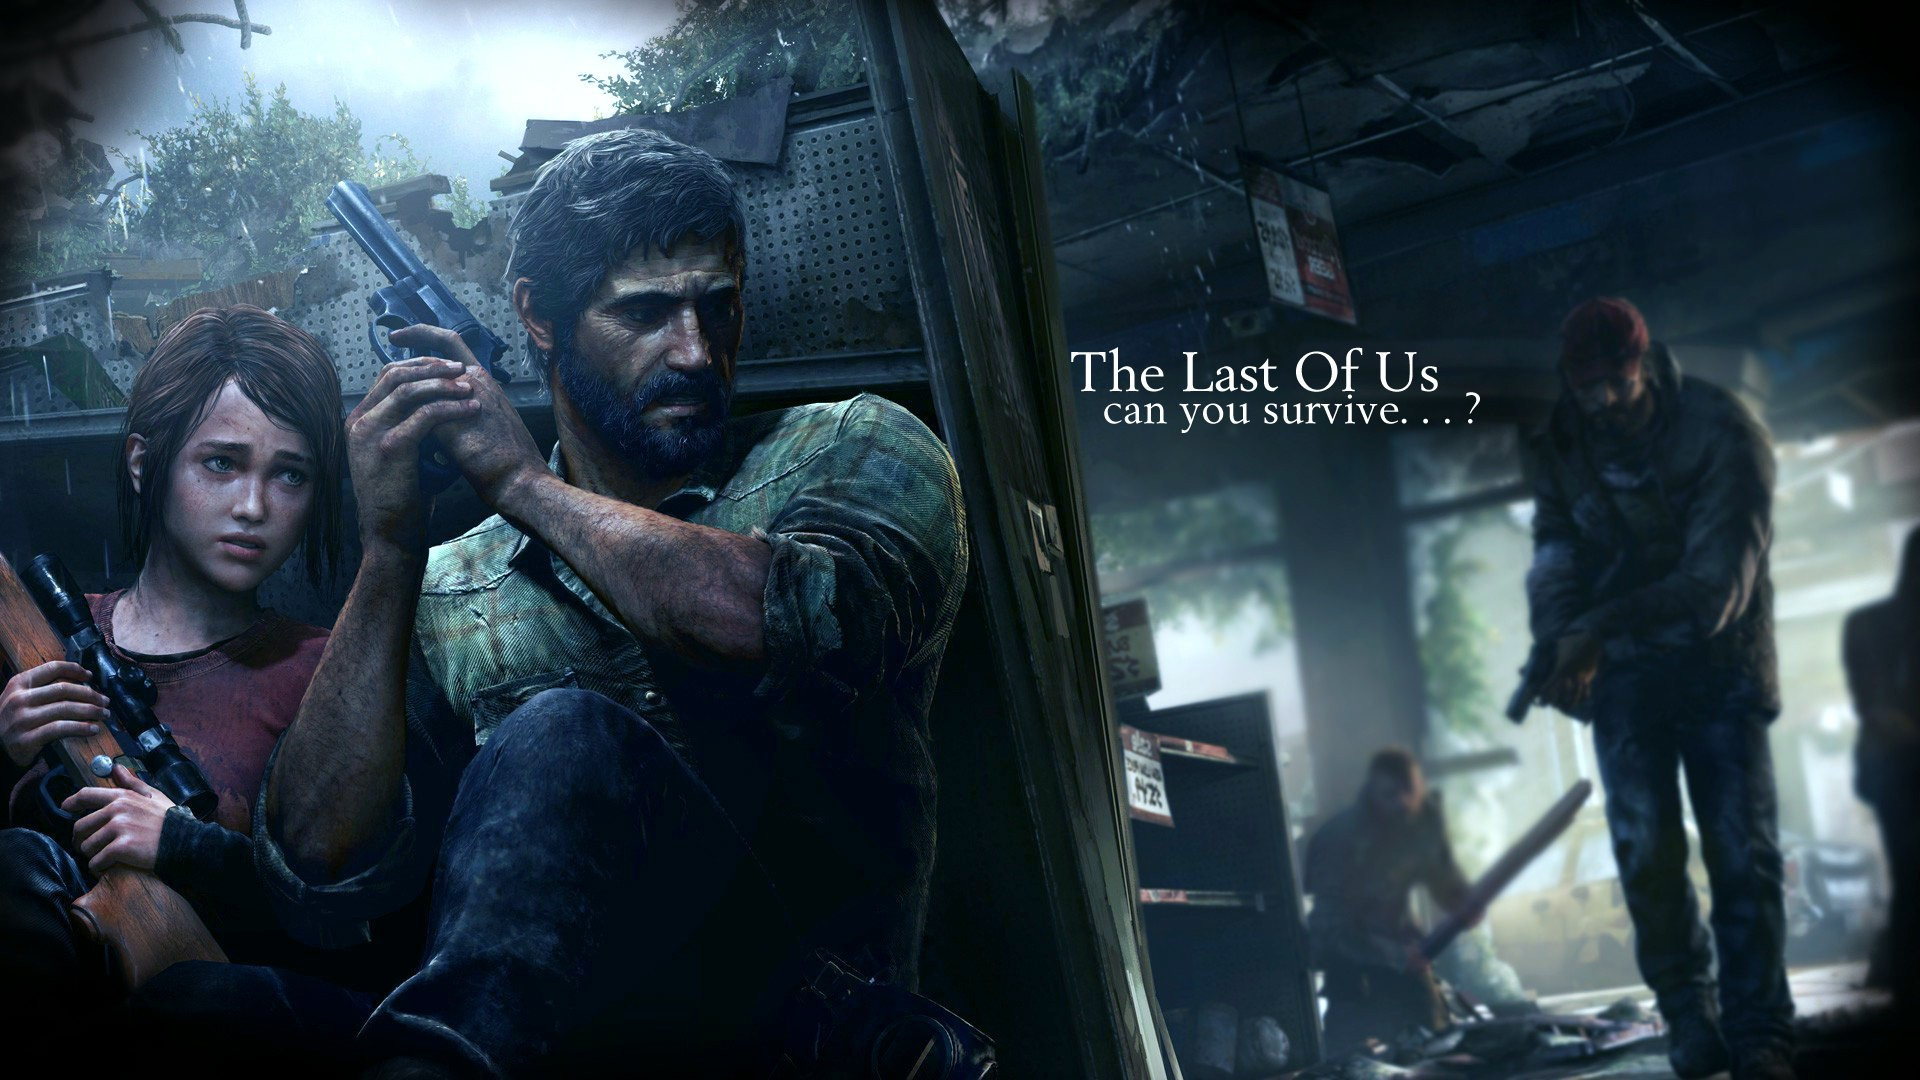 Wallpaper Quotes For Computer Video Games Quotes Naughty Dog Playstation 3 The Last Of